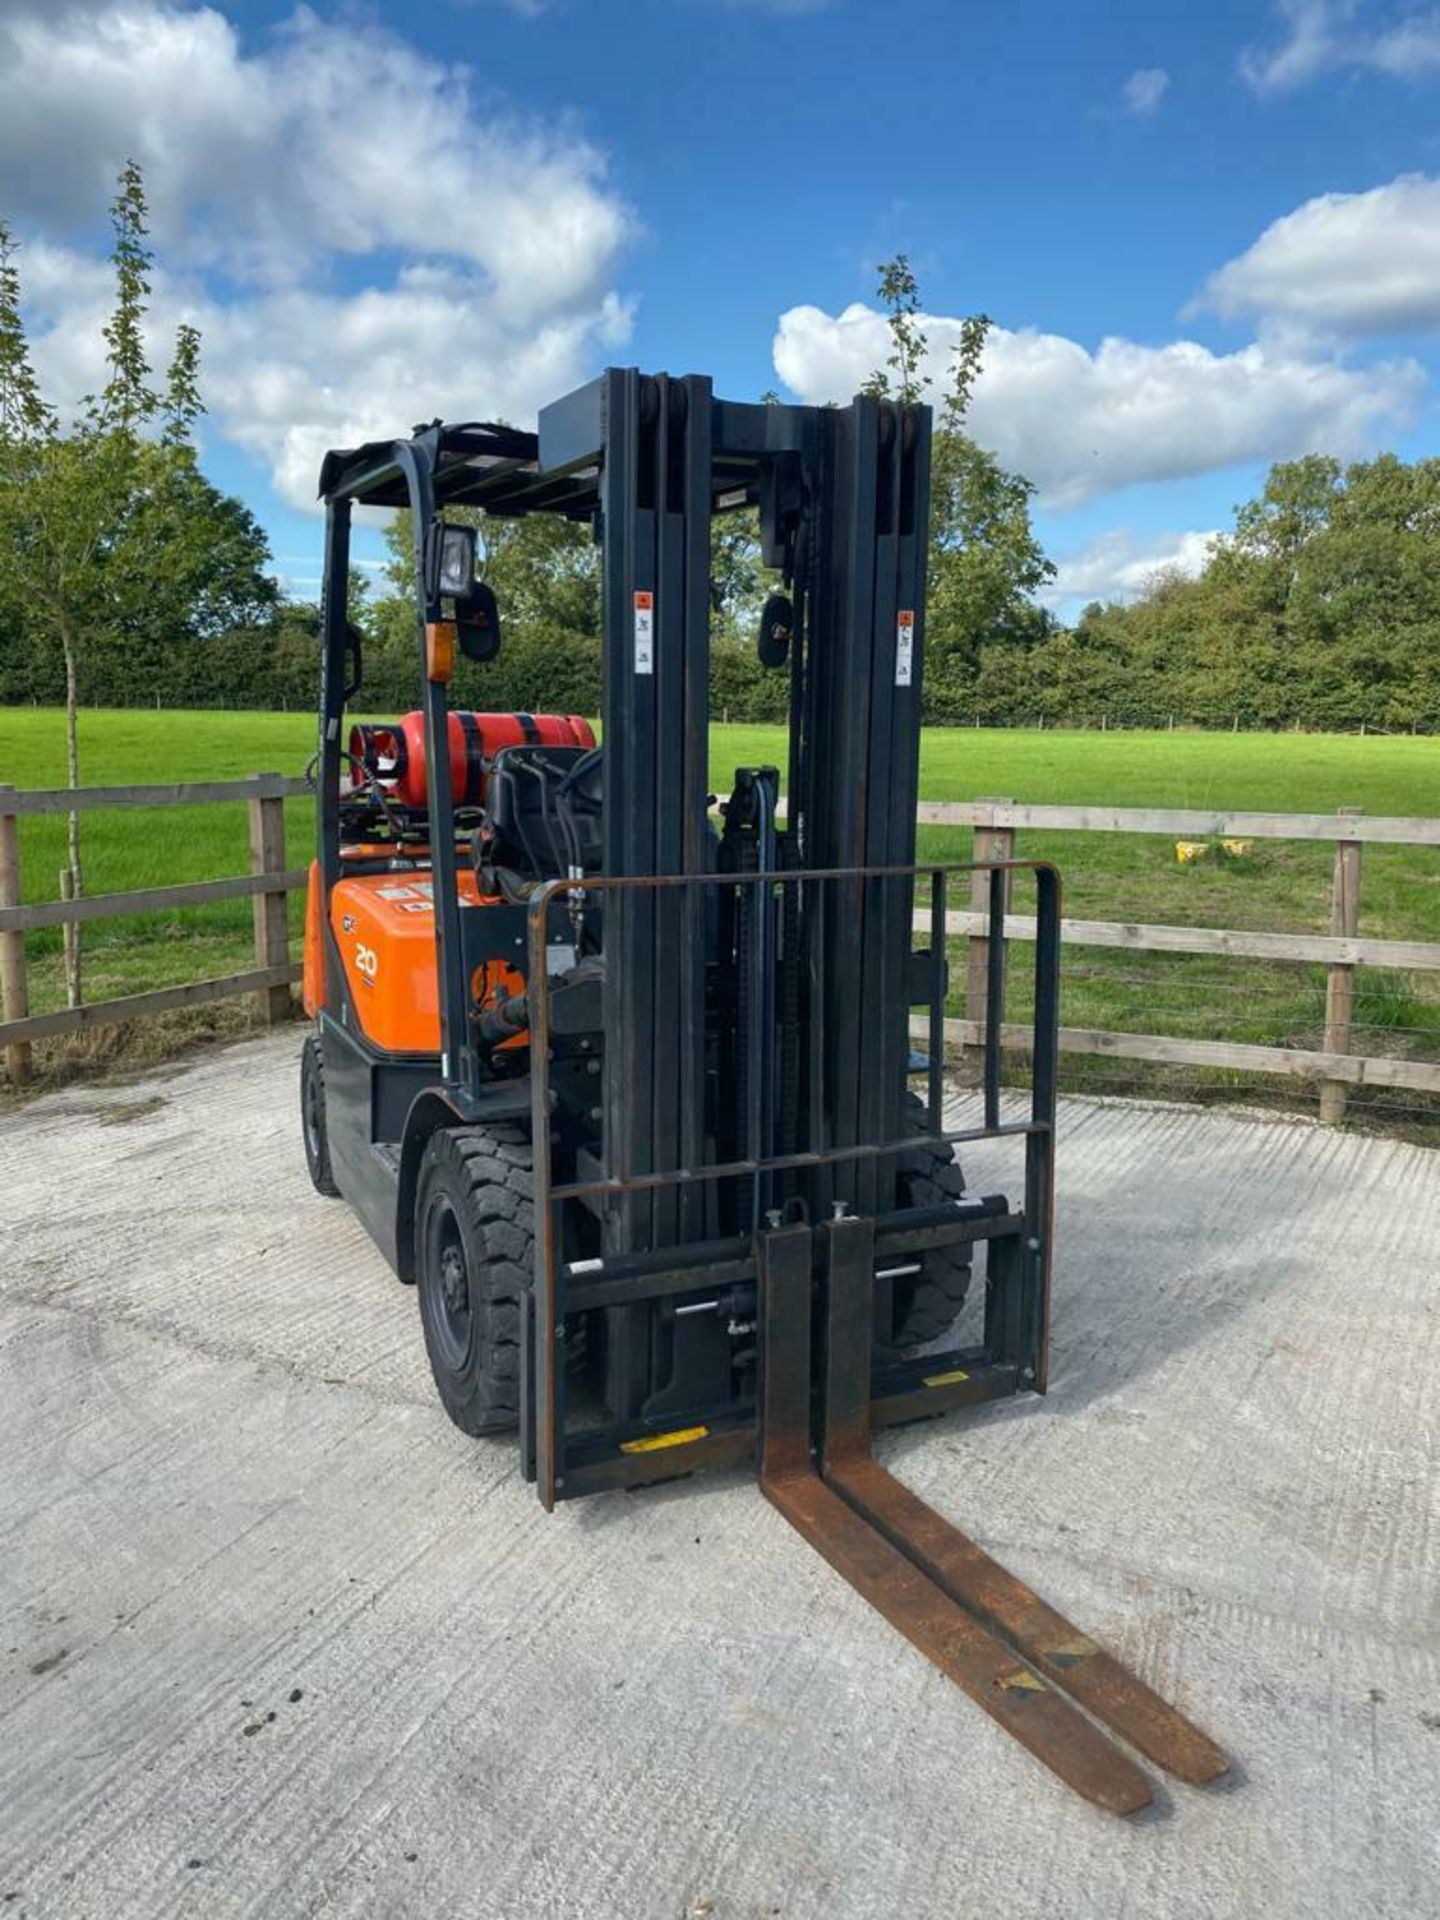 DOOSAN 2 TON GAS FORK LIFT, MODEL: G20G, YEAR 2016, TRIPLE MAST, SIDE SHIFT, CONTAINER SPEC, 4710MM - Image 2 of 5